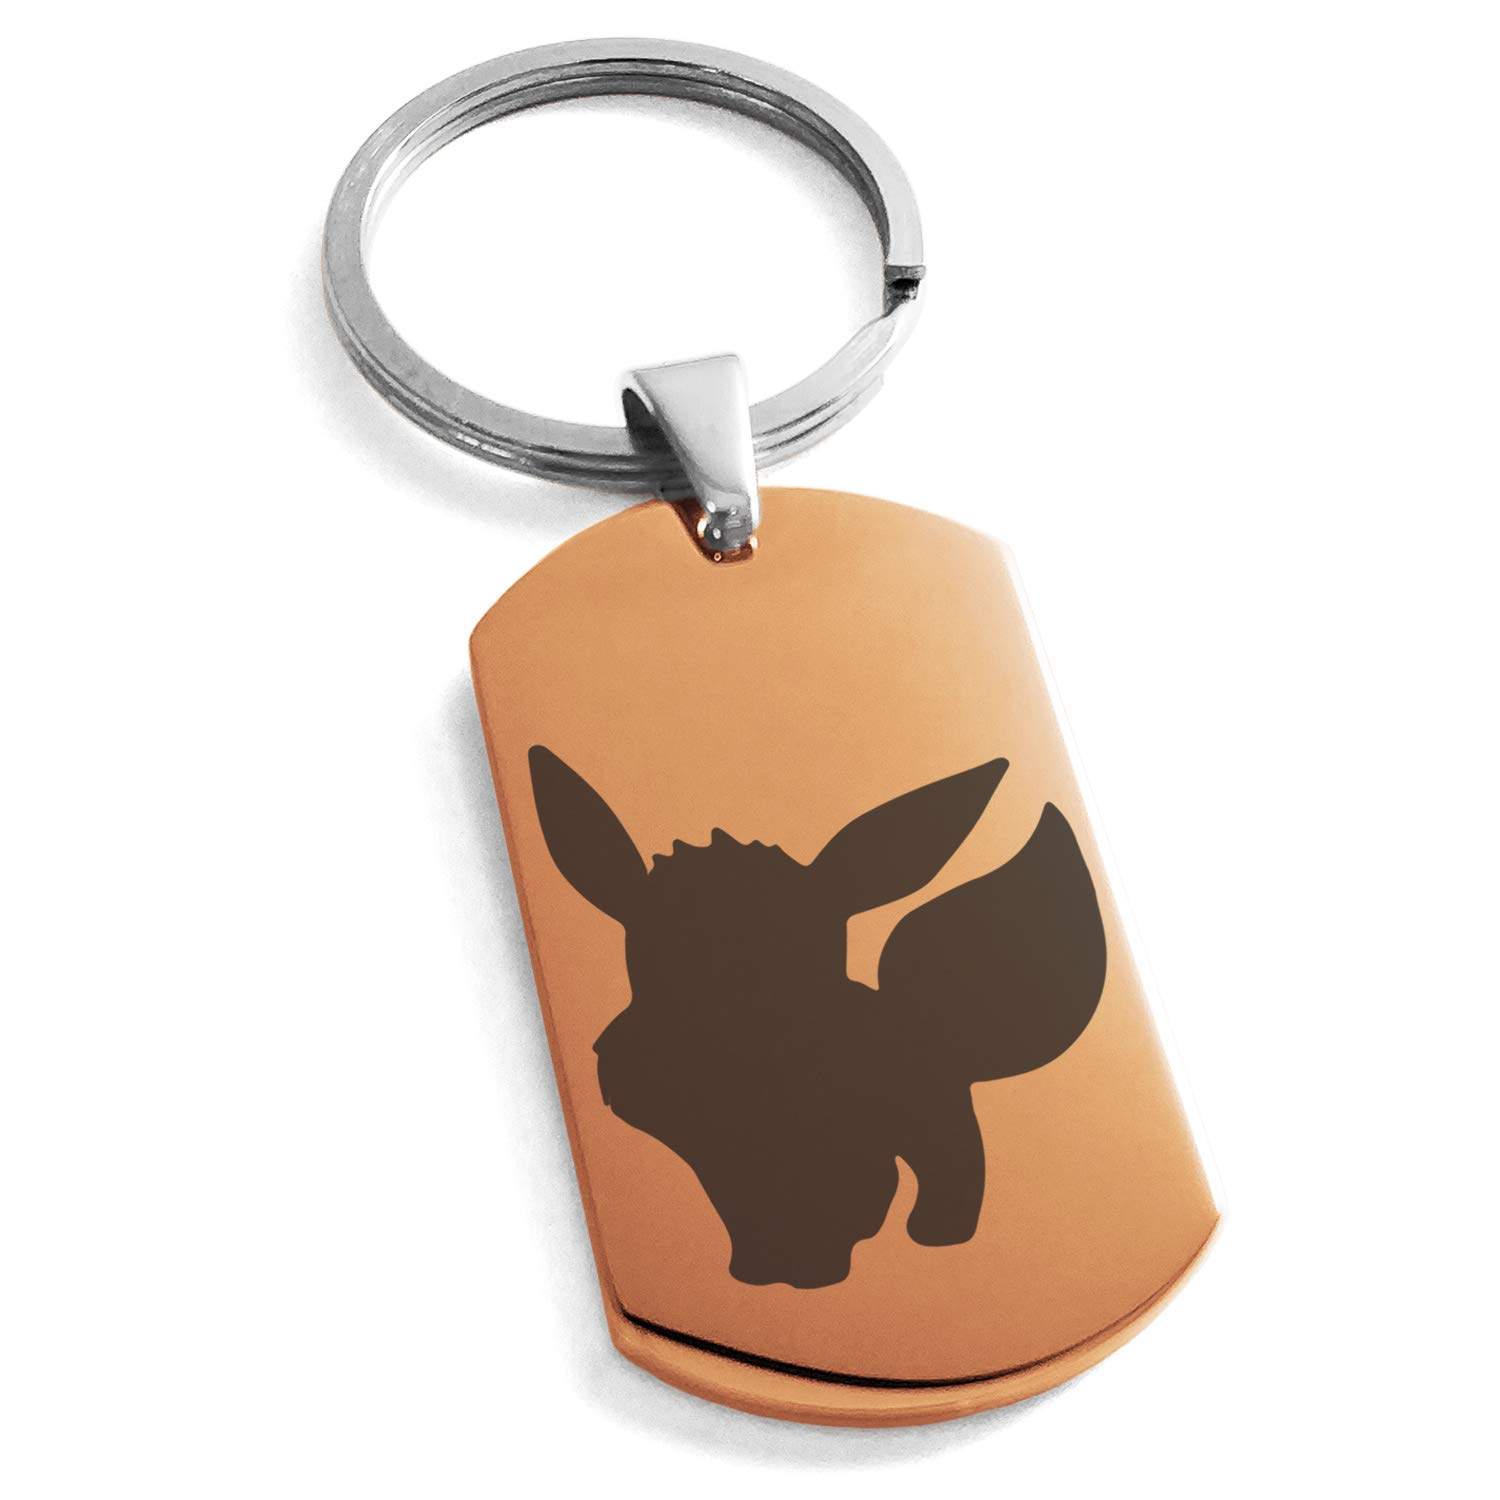 Tioneer Rose Gold Stainless Steel 1st Gen Eevee Pokemon Engraved Dog Tag Keychain Keyring